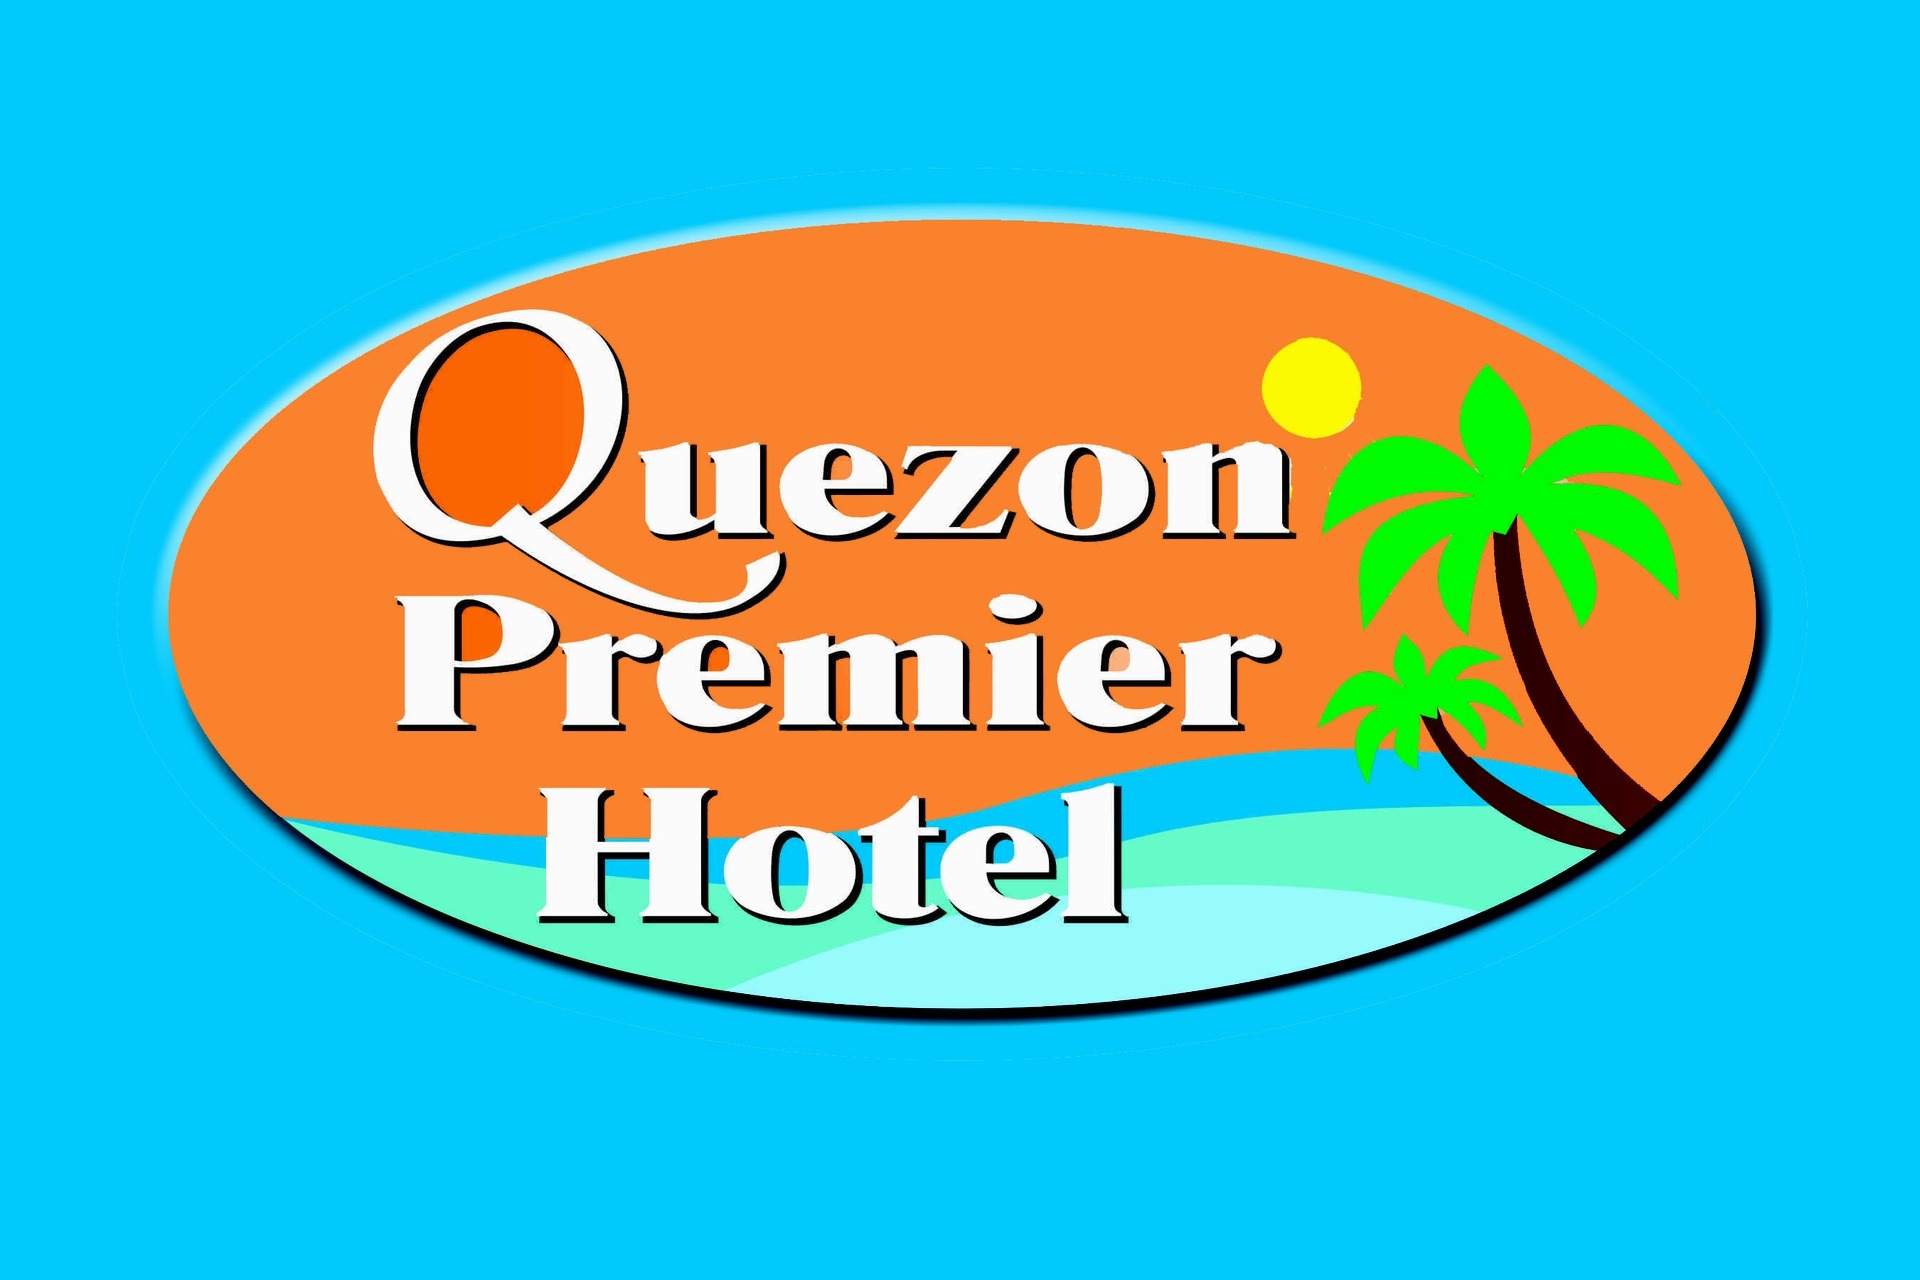 FIRST QUEZON PREMIER HOTEL